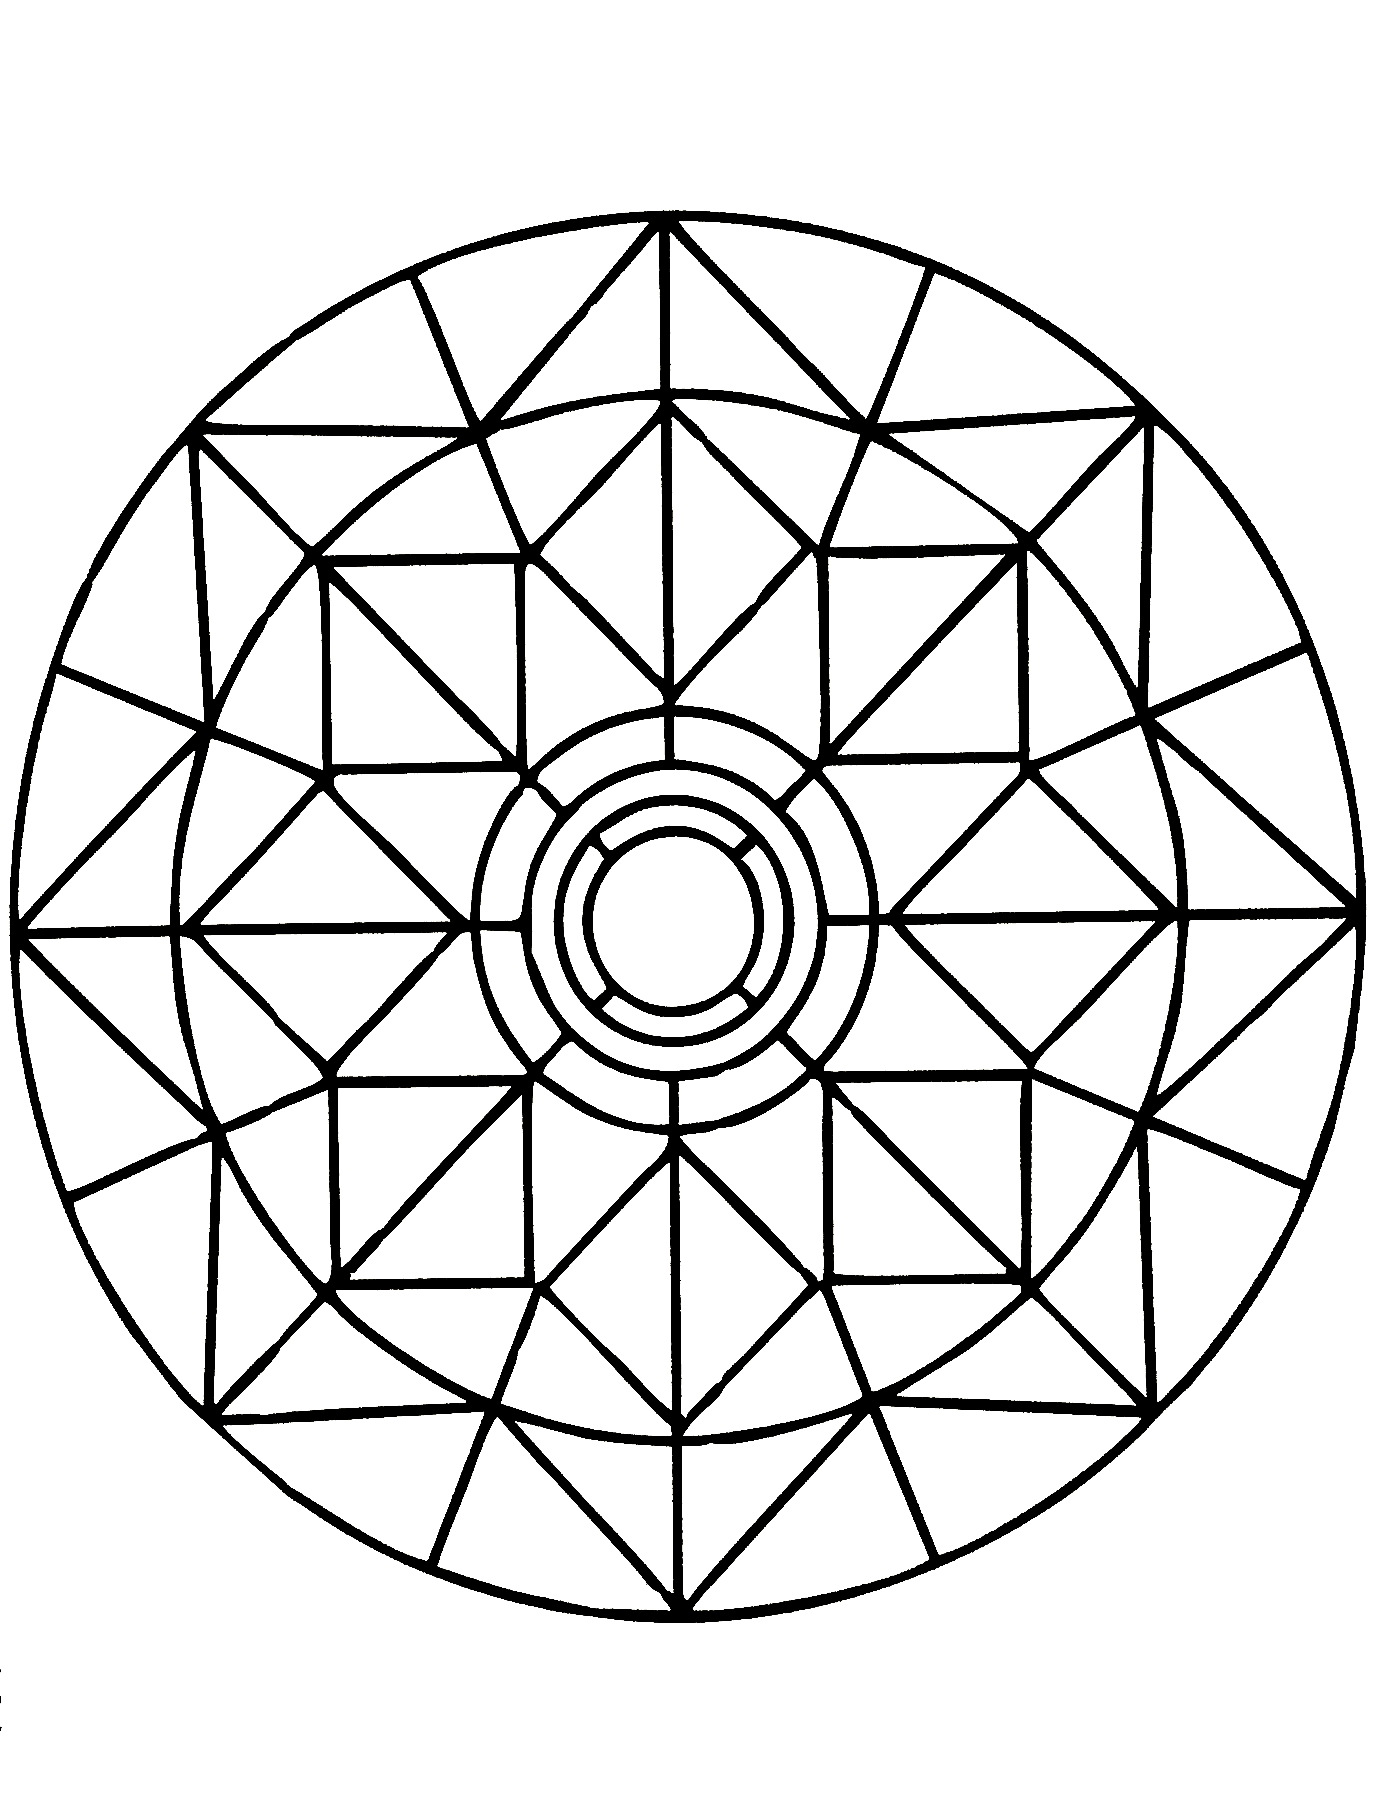 Simple Mandalas coloring page to print and color for free